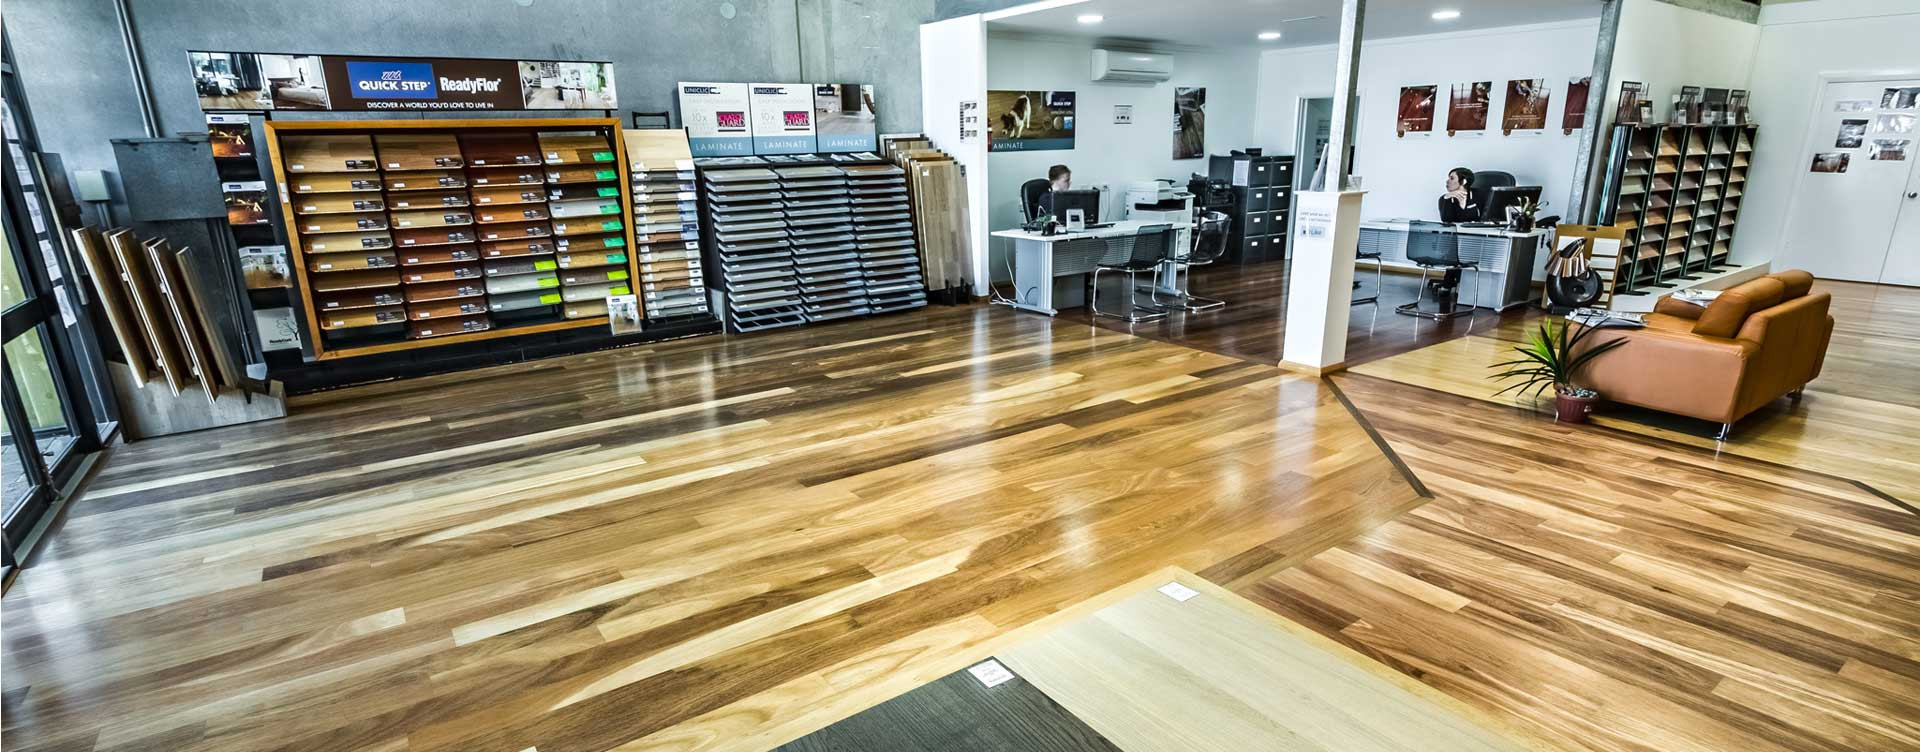 hardwood floor sanding companies of timber flooring perth coastal flooring wa quality wooden intended for thats why they call us the home of fine wood floors